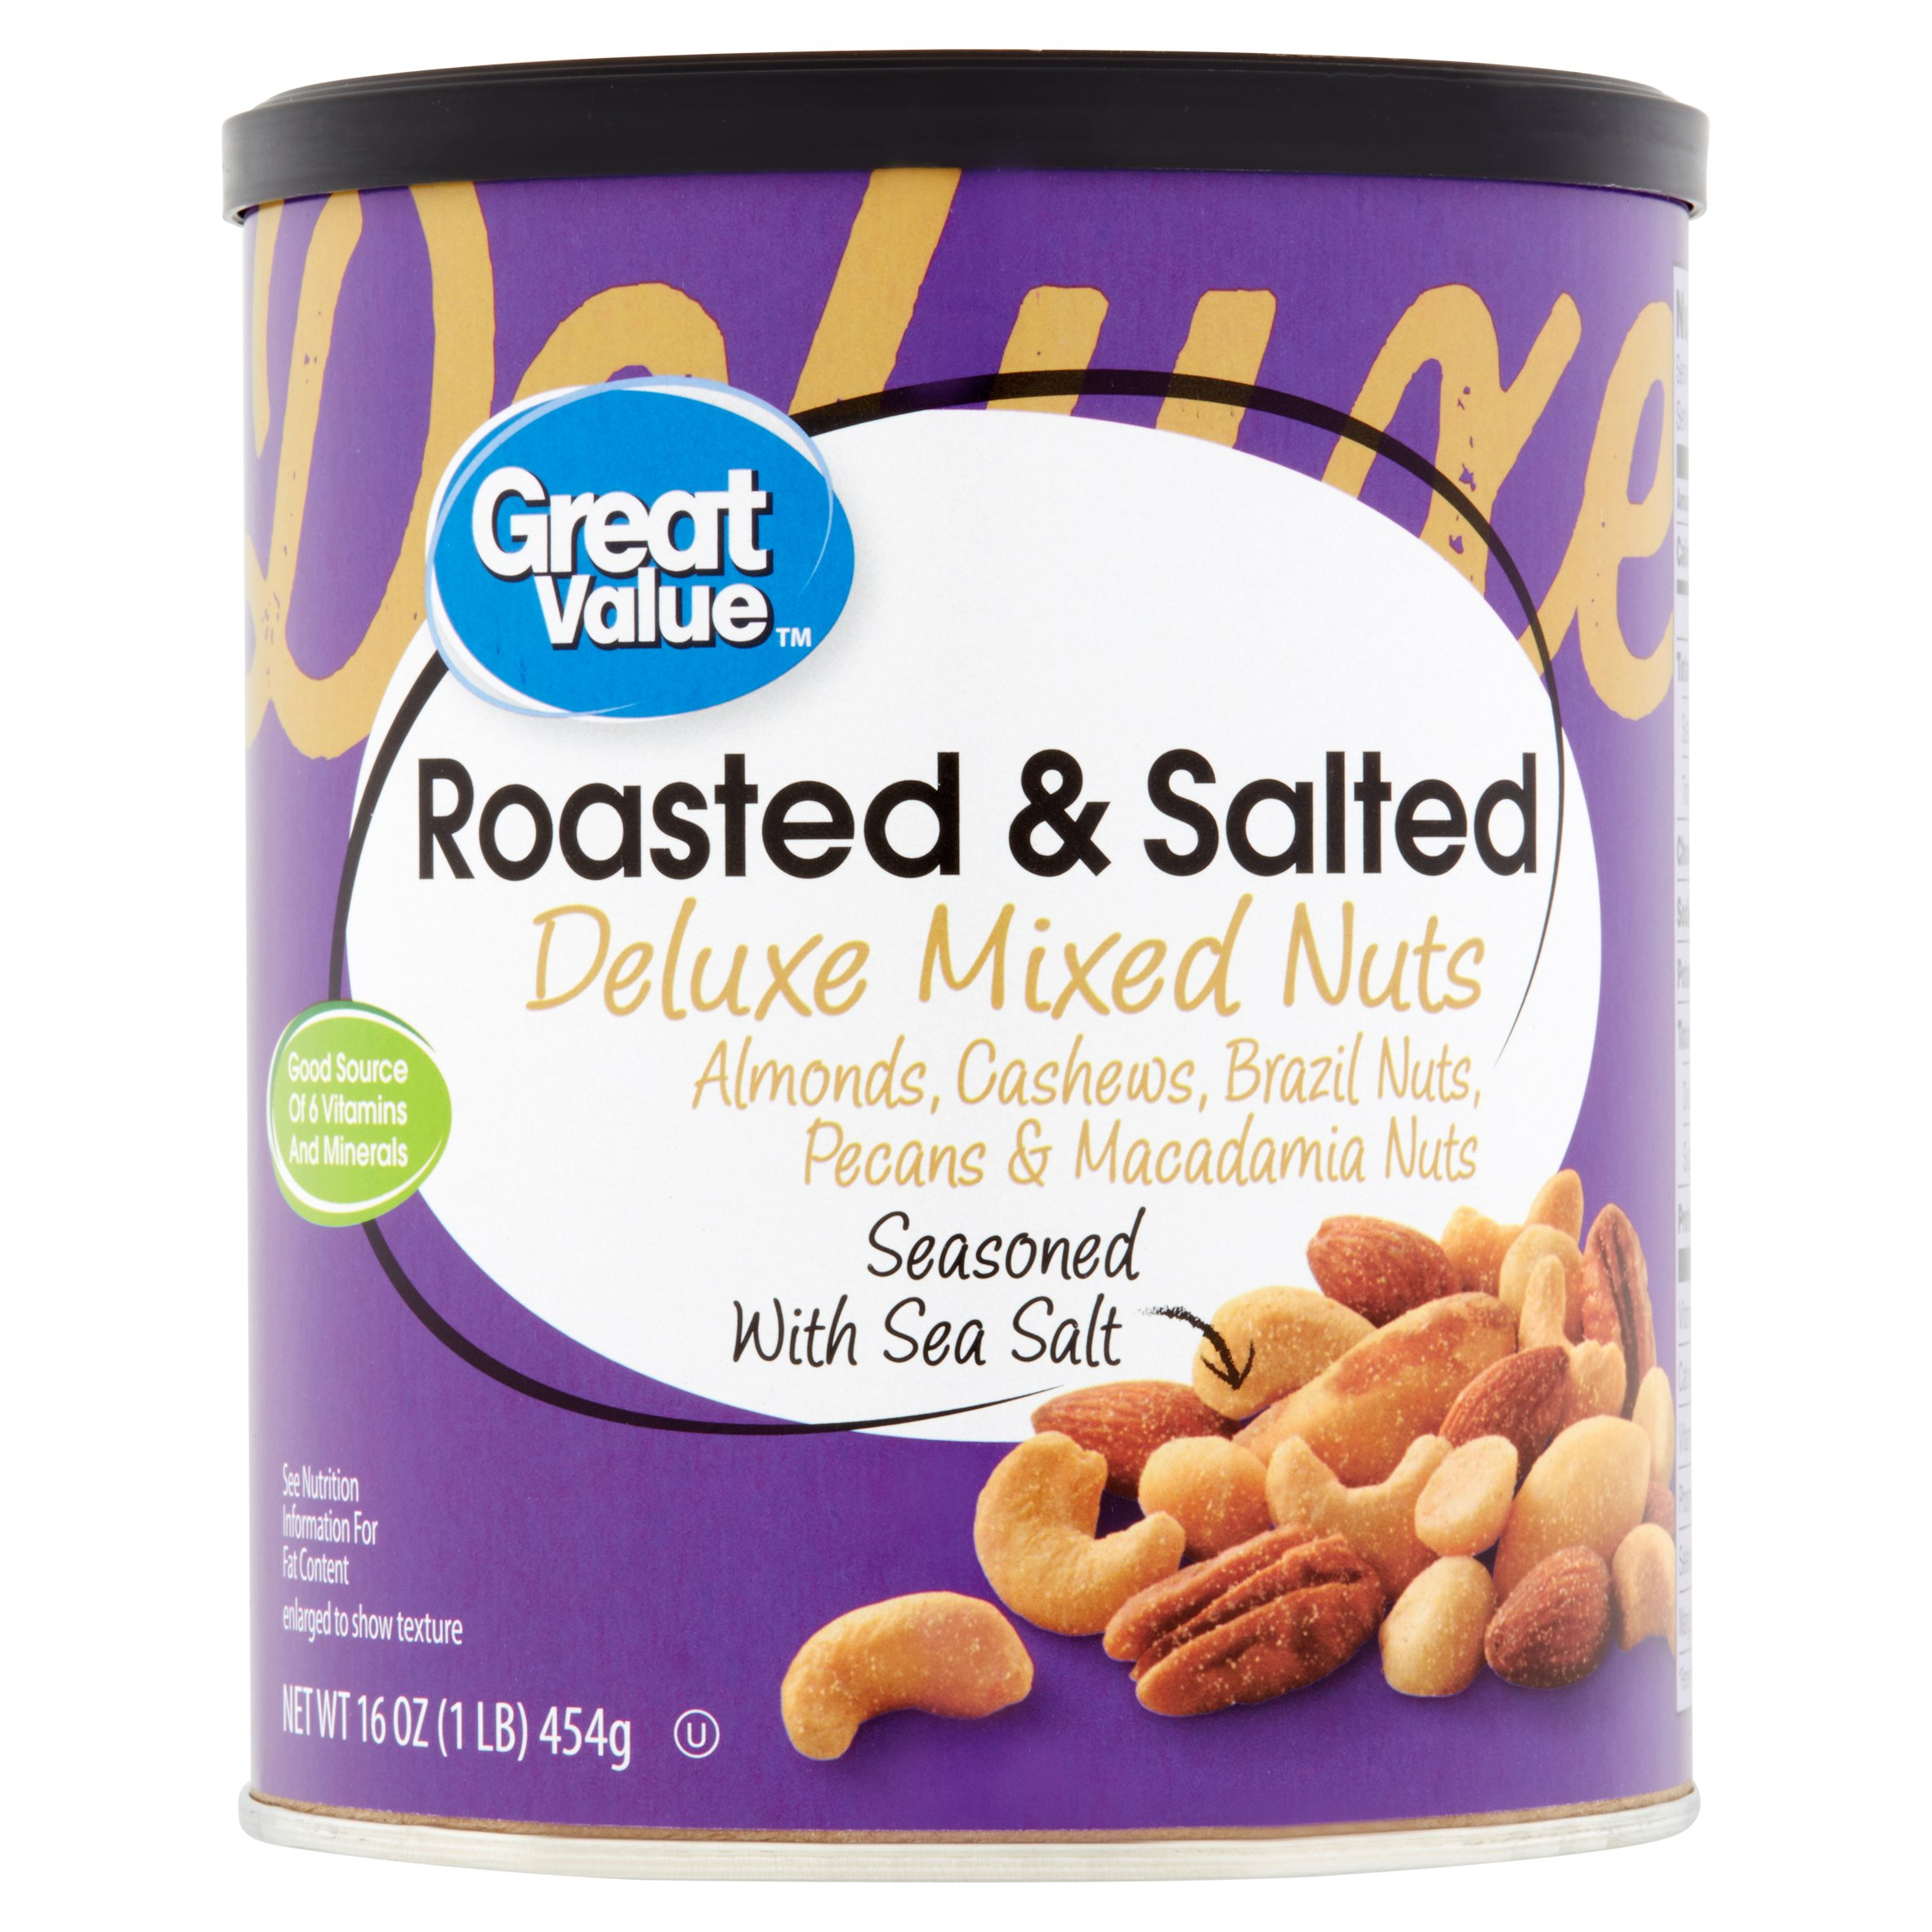 Great Value Deluxe Mixed Nuts, 16 oz by Wal-Mart Stores, Inc.